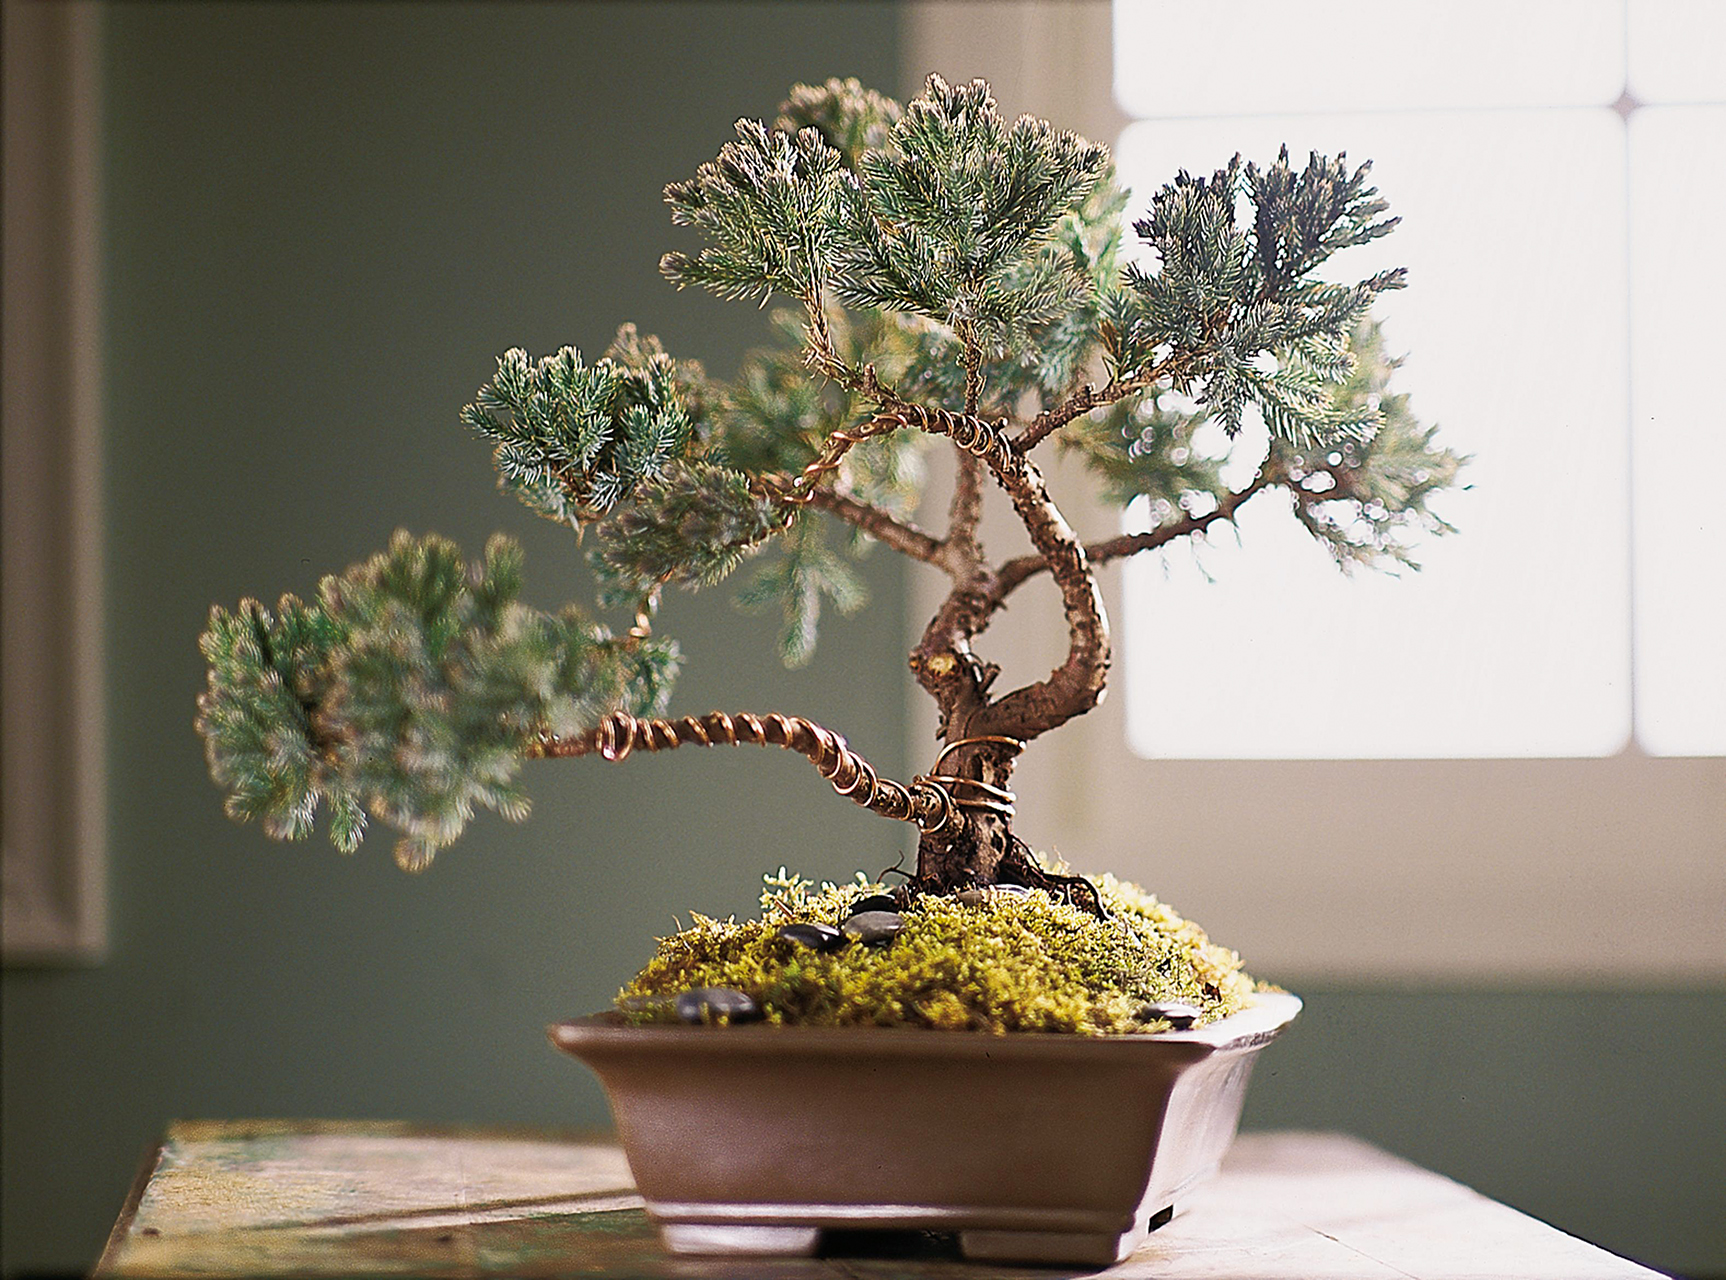 The Planter Rsquo S Choice Bonsai Starter Kit Is So Easy To Use Better Homes Gardens